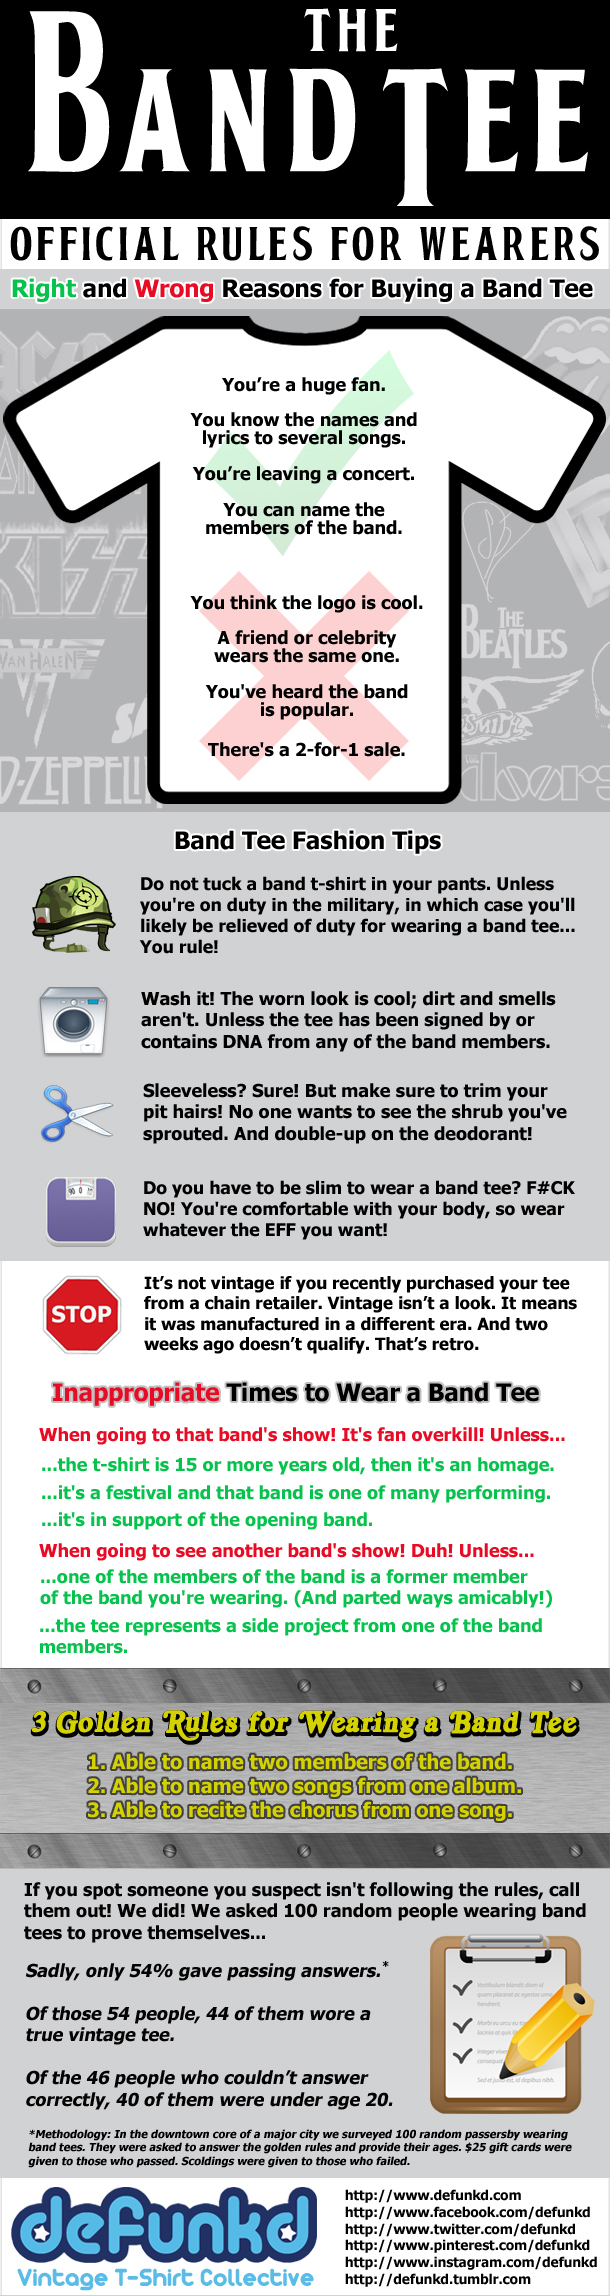 Rules for Wearing a Band Tee: Infographic